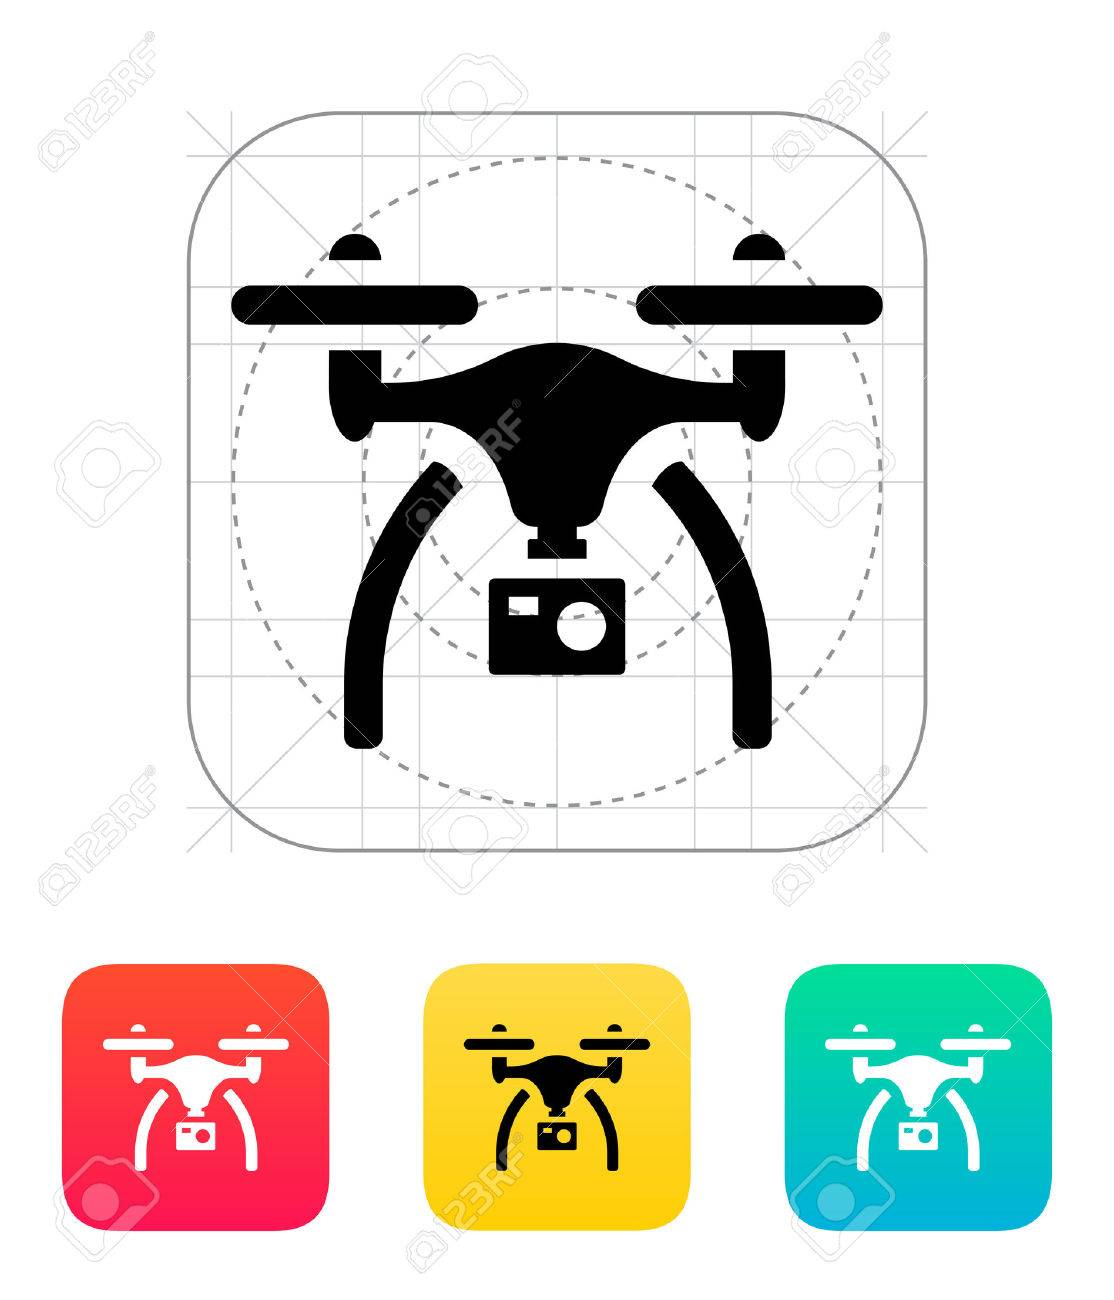 Drone With Camera Icon Stock Vector